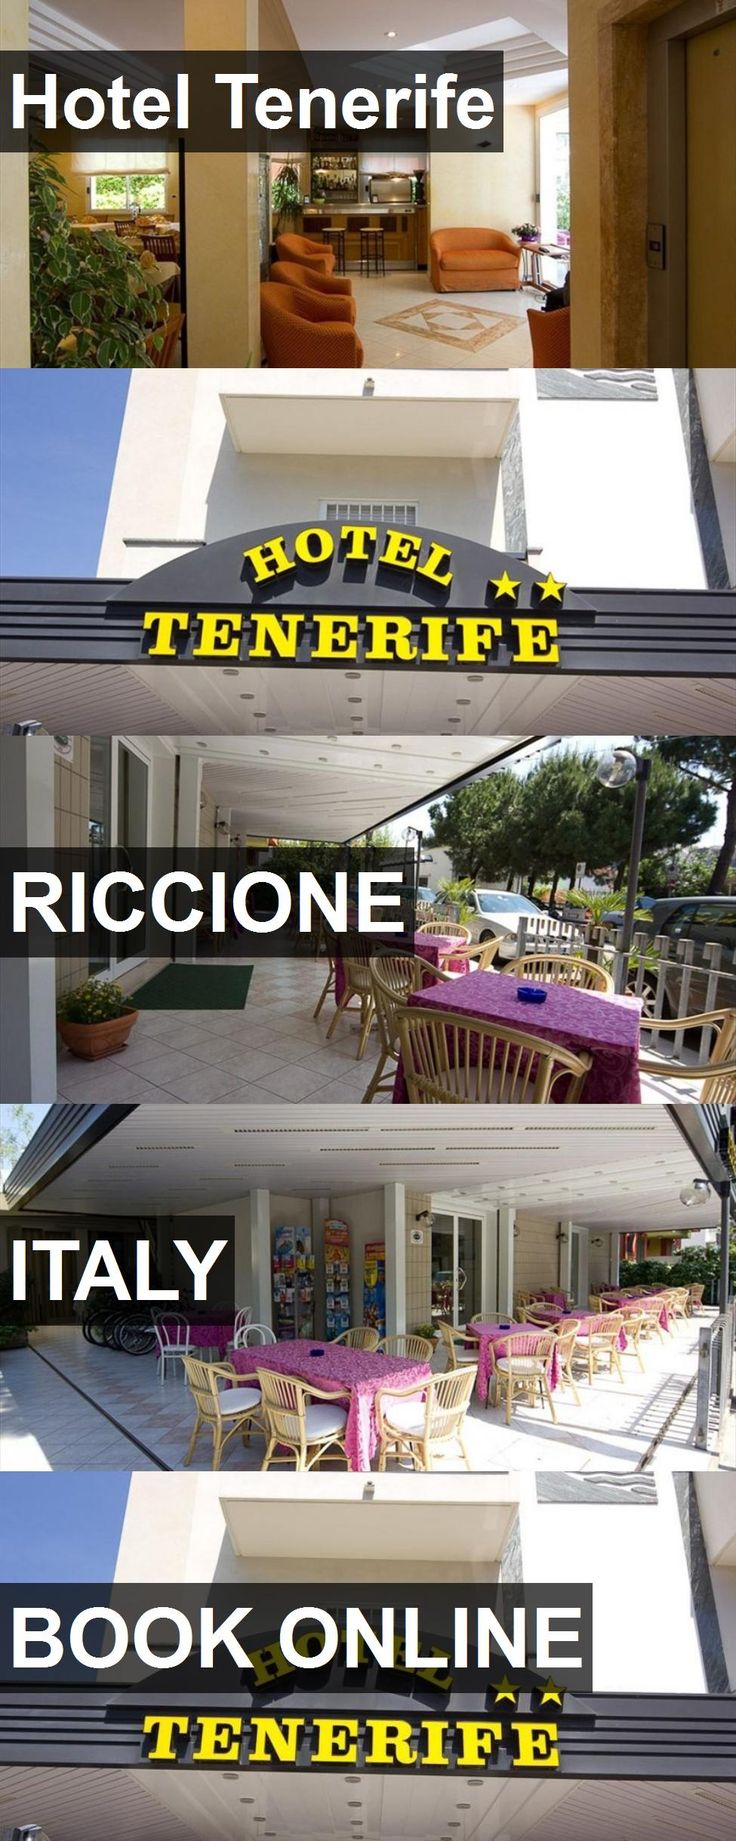 Hotel Hotel Tenerife in Riccione, Italy. For more information, photos, reviews and best prices please follow the link. #Italy #Riccione #HotelTenerife #hotel #travel #vacation